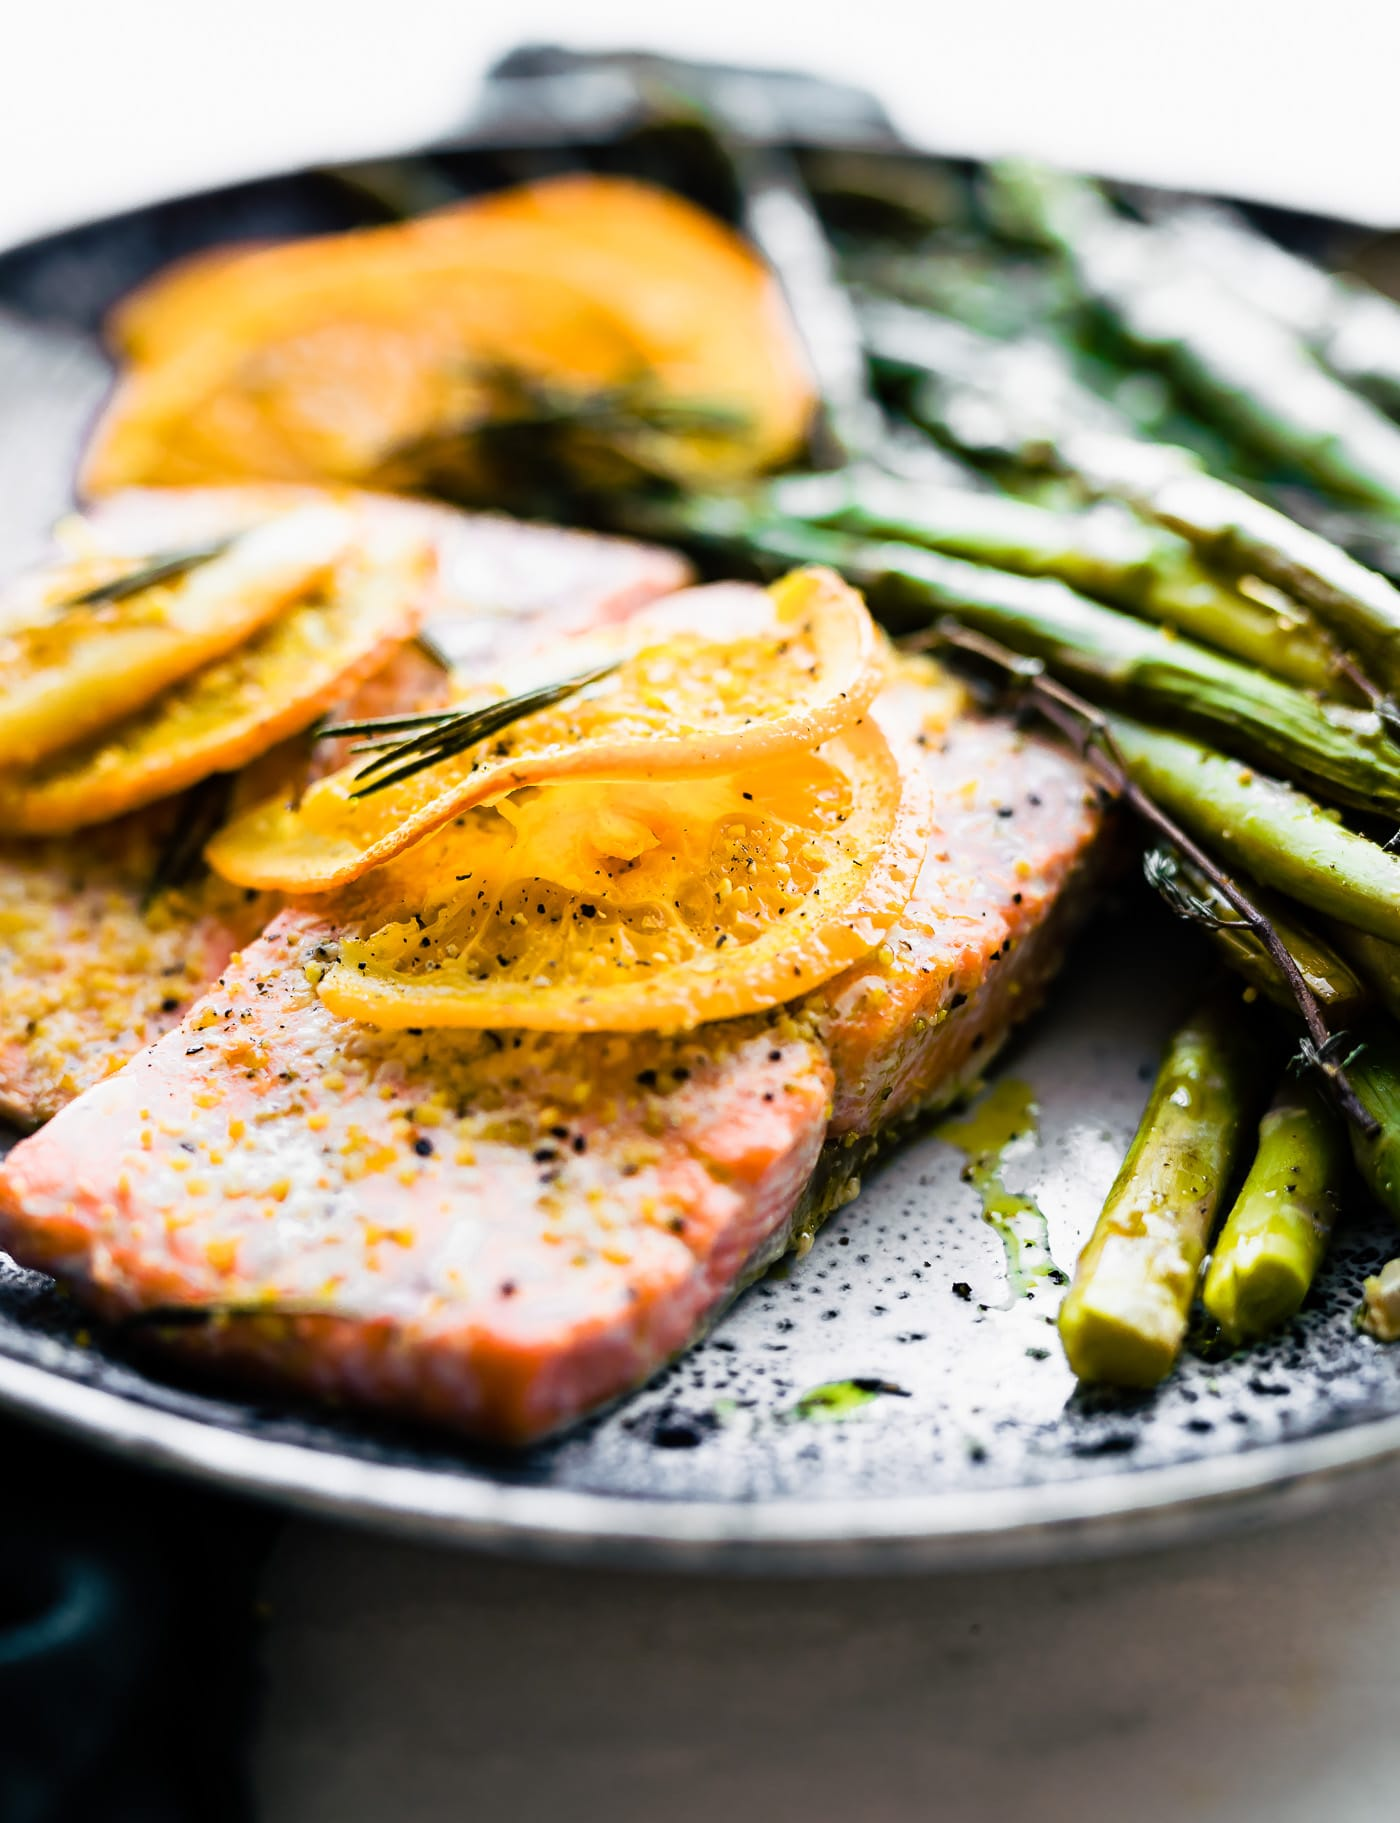 This Rosemary Citrus Baked salmon is a healthy one pan meal ready in 20 minutes.  Fresh Rosemary, orange juice, lemon, veggies, sockeye salmon, olive oil, and spices. A deliciously nourishing meal that's simple to make. #paleo #whole30